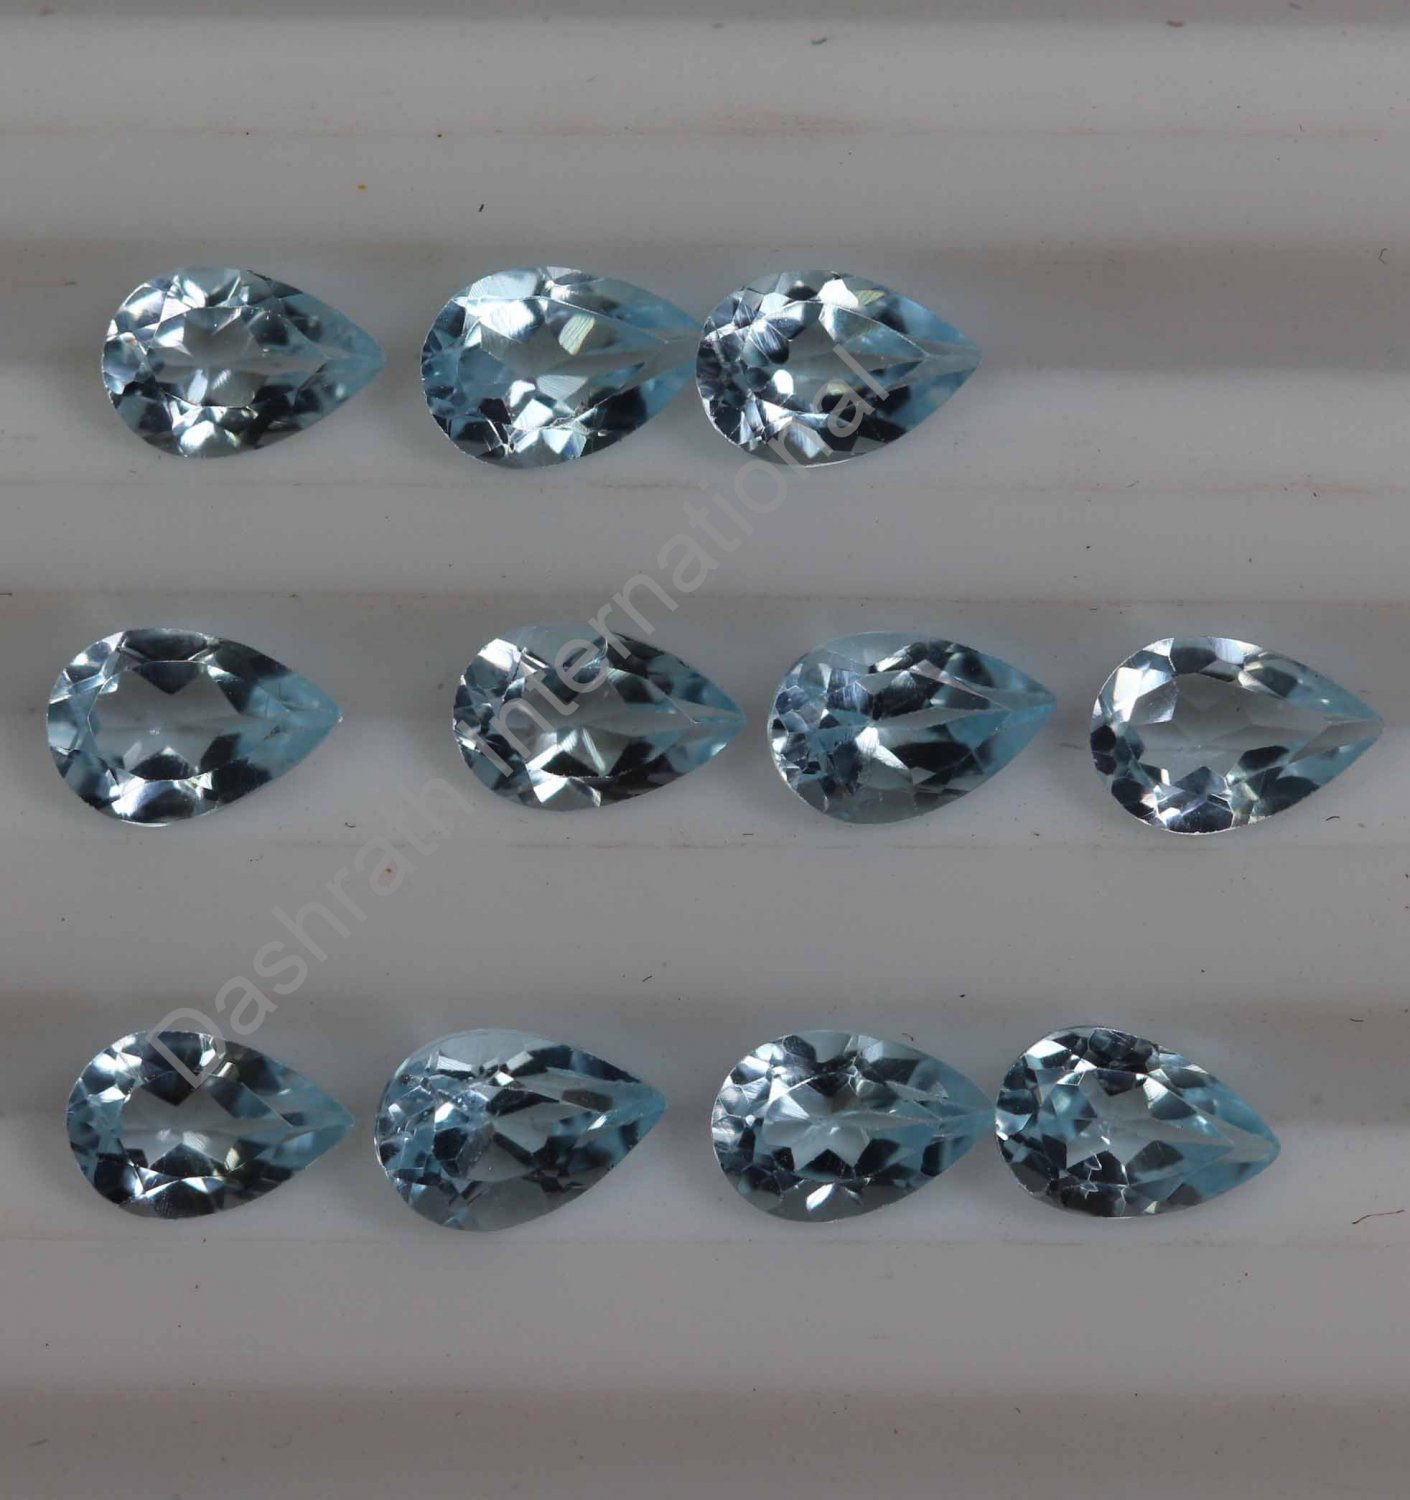 4x6mm Natural Sky Blue Topaz Faceted Cut Pear 50 Pieces Lot  Top Quality Loose Gemstone